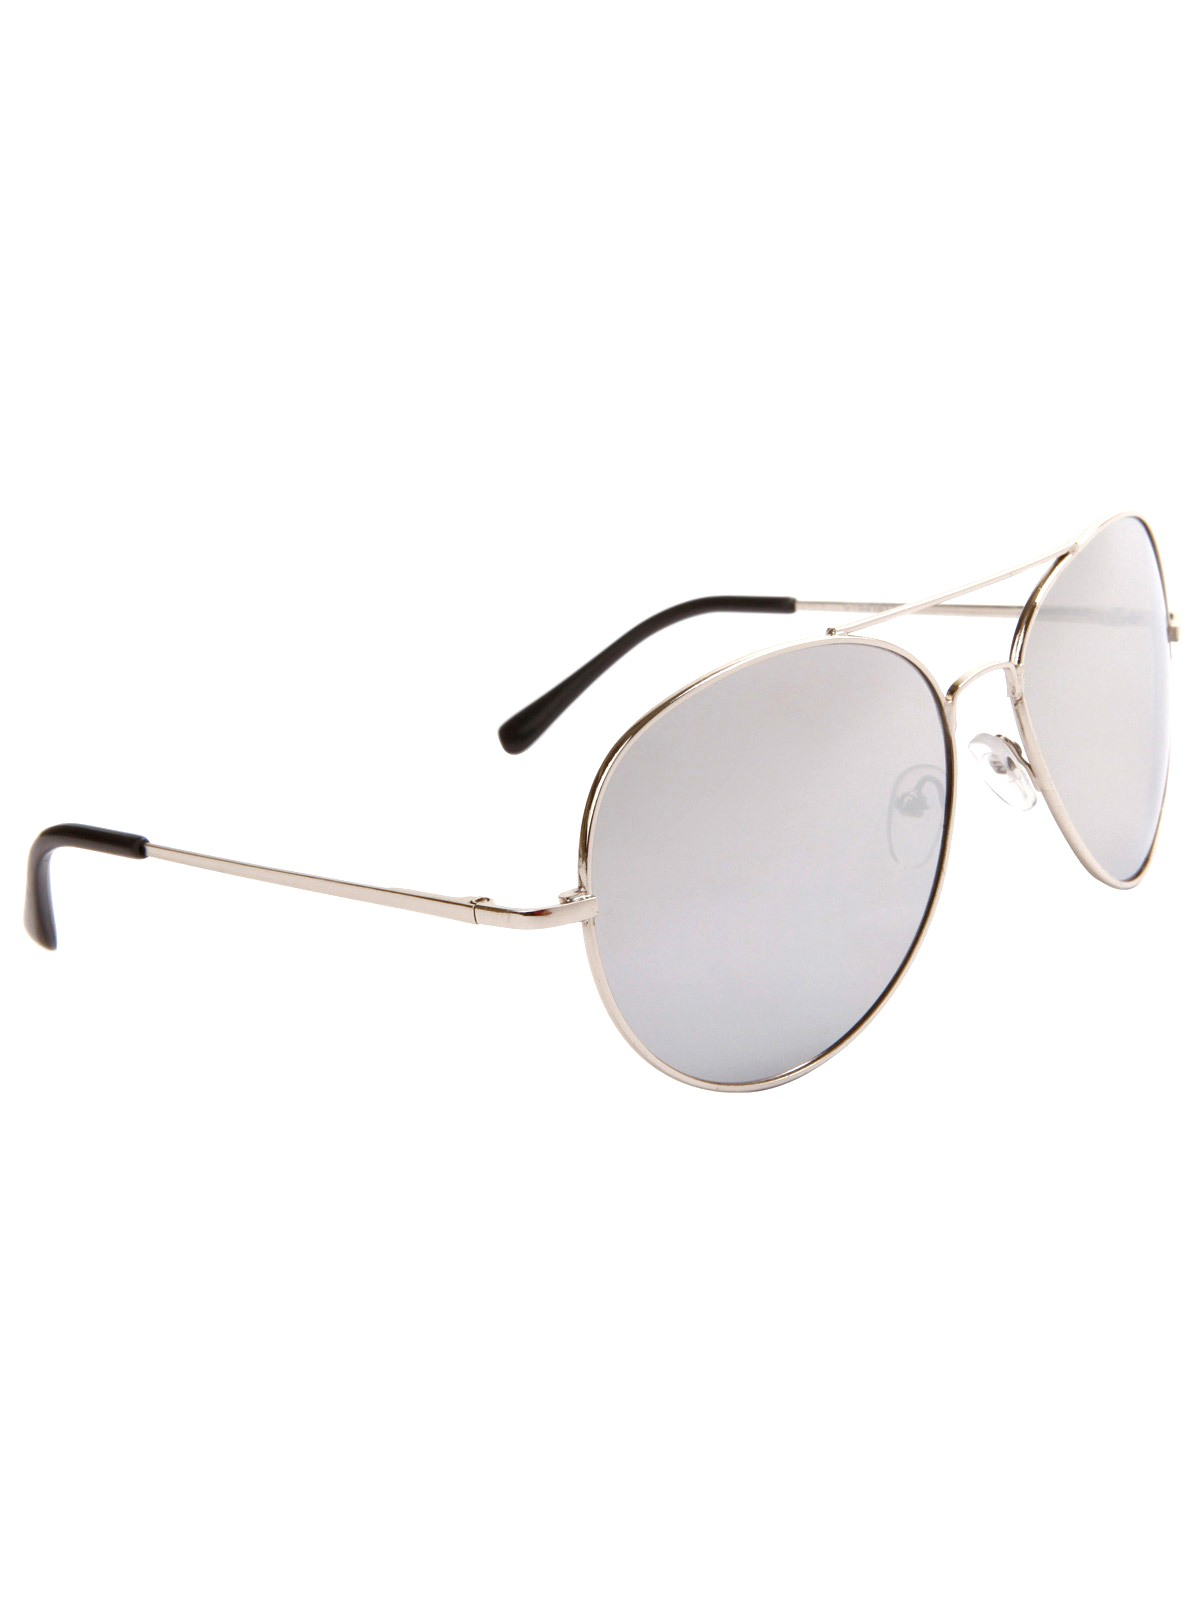 1c4d7fb75d 70s Glasses (Care Label)  70s style (made recently) -Care Label- Unisex  silver metal rim background aviator sunglasses with mirrored lenses.